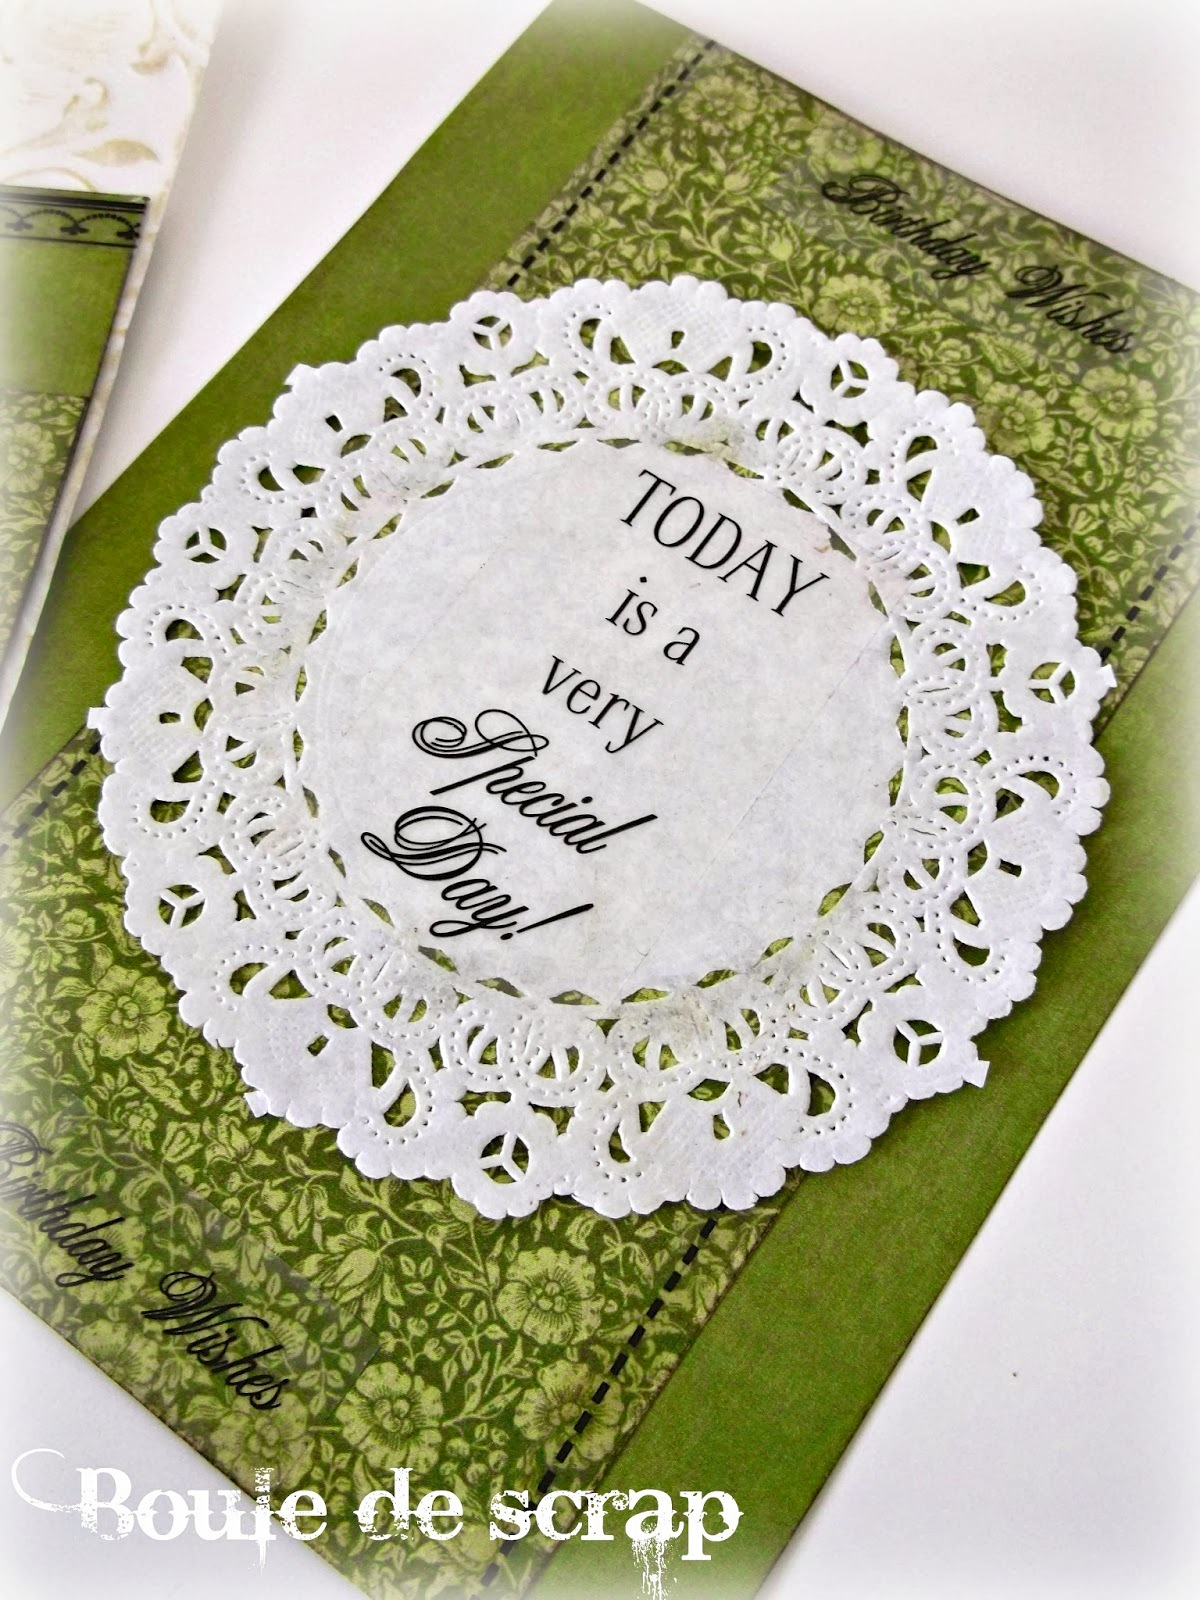 SRM Stickers Blog - Doily Cards by Angélique - #card #birthday #stickers #glassine bags #embossed